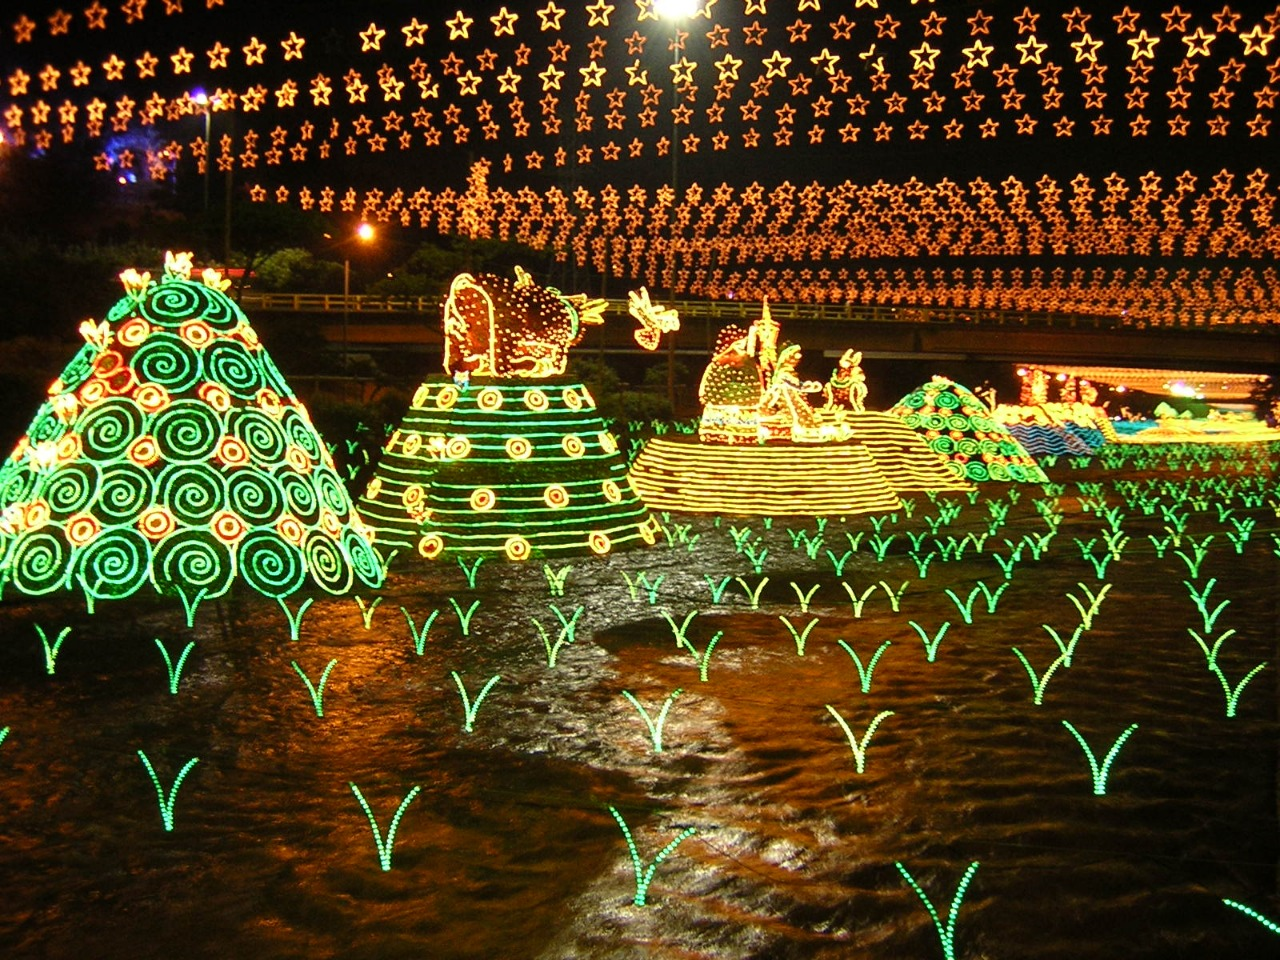 Medellin Lights Tour - Christmas Lighting - Colombia - Tourist Plan - Christmas Plans in Colombia